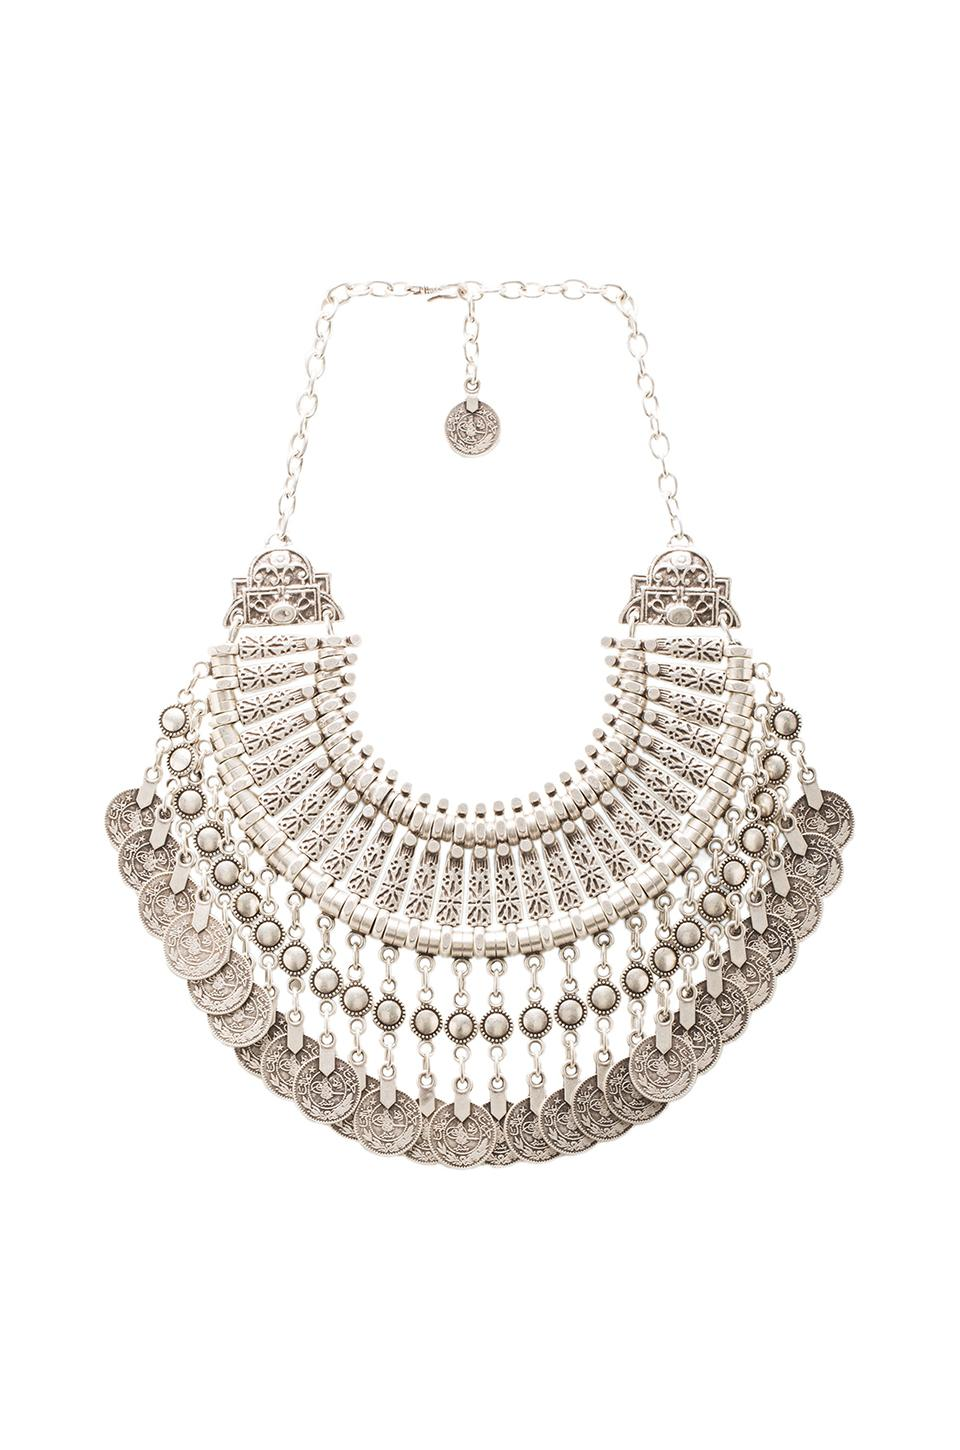 Natalie B Jewelry Natalie B Fit for a Queen Necklace in Silver   REVOLVE